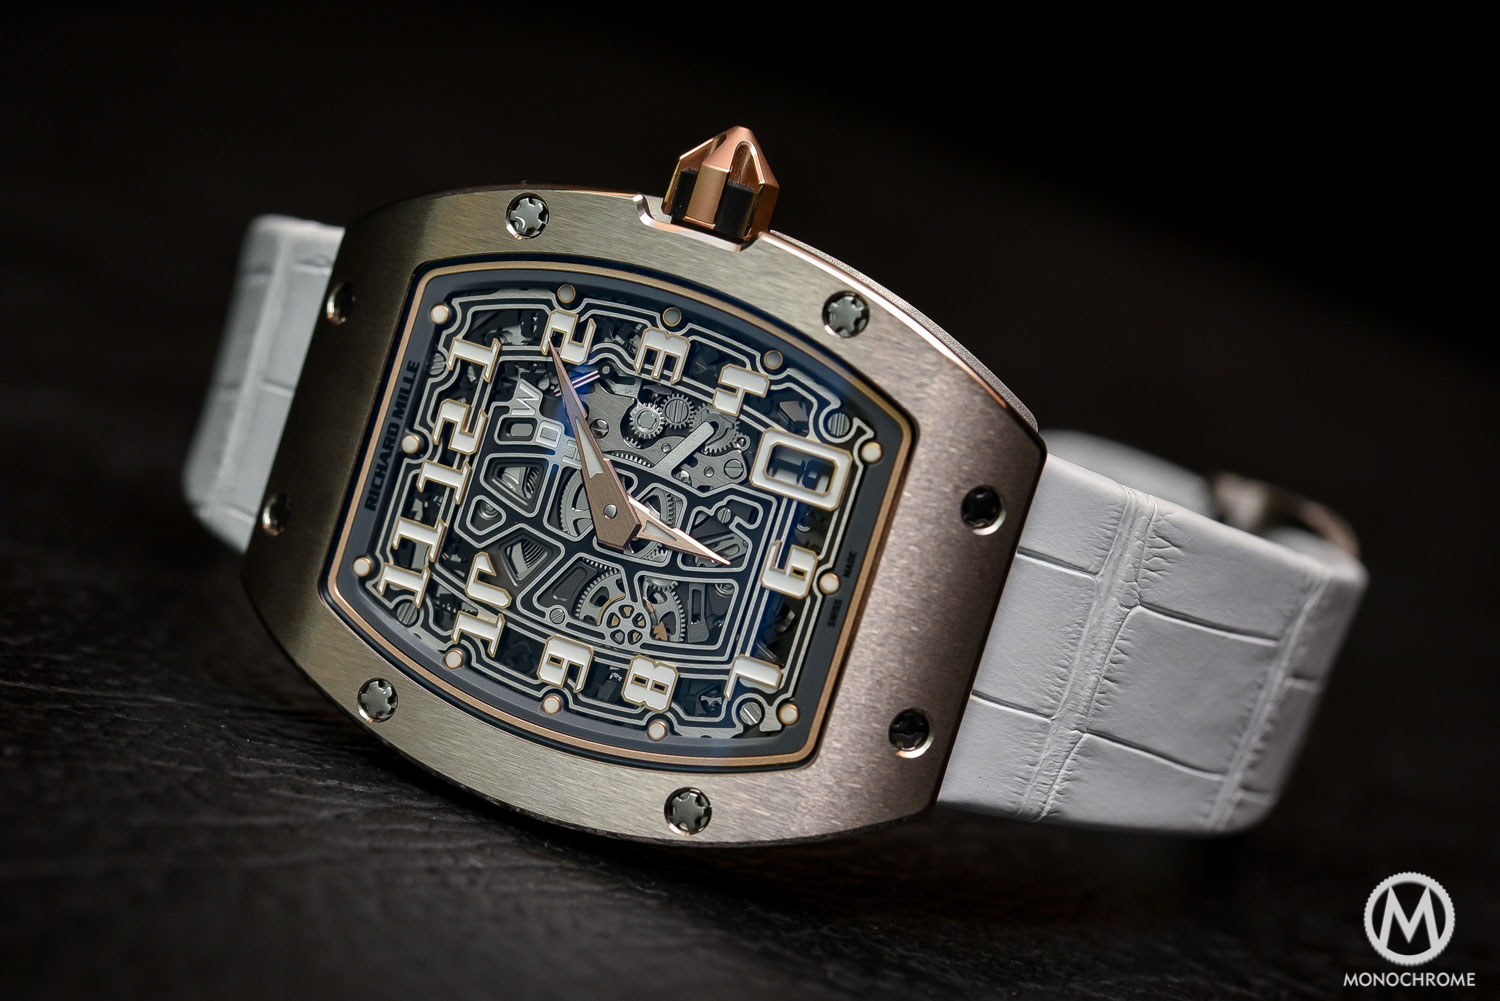 Richard Mille RM 67-01 Automatic Extra Flat white gold - SIHH 2016